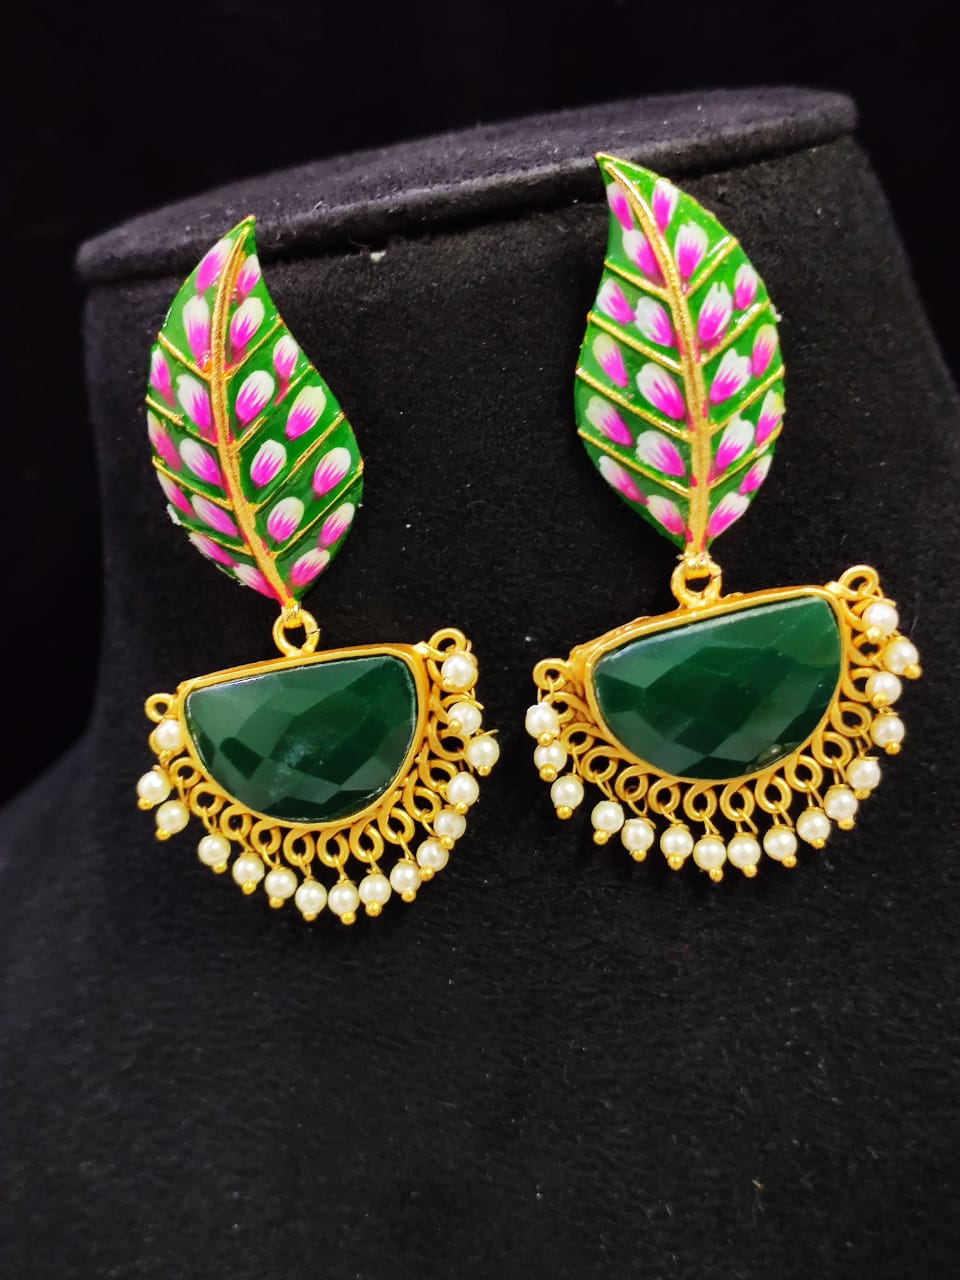 Adorable Matt Golden Hand Painted Stone Leaf Earrings